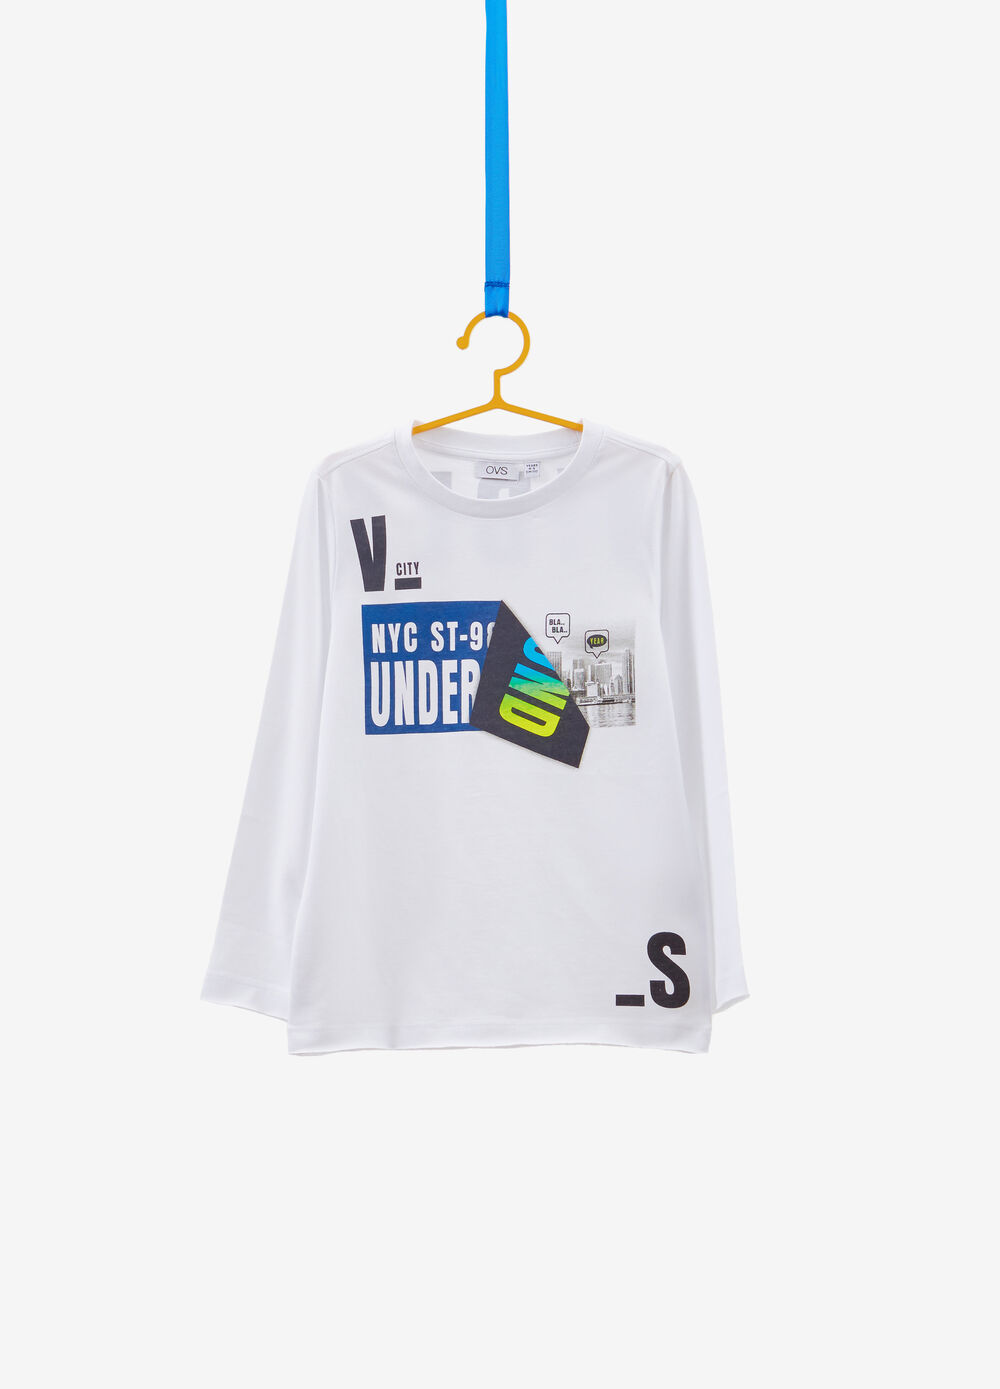 Raw cut cotton T-shirt with print